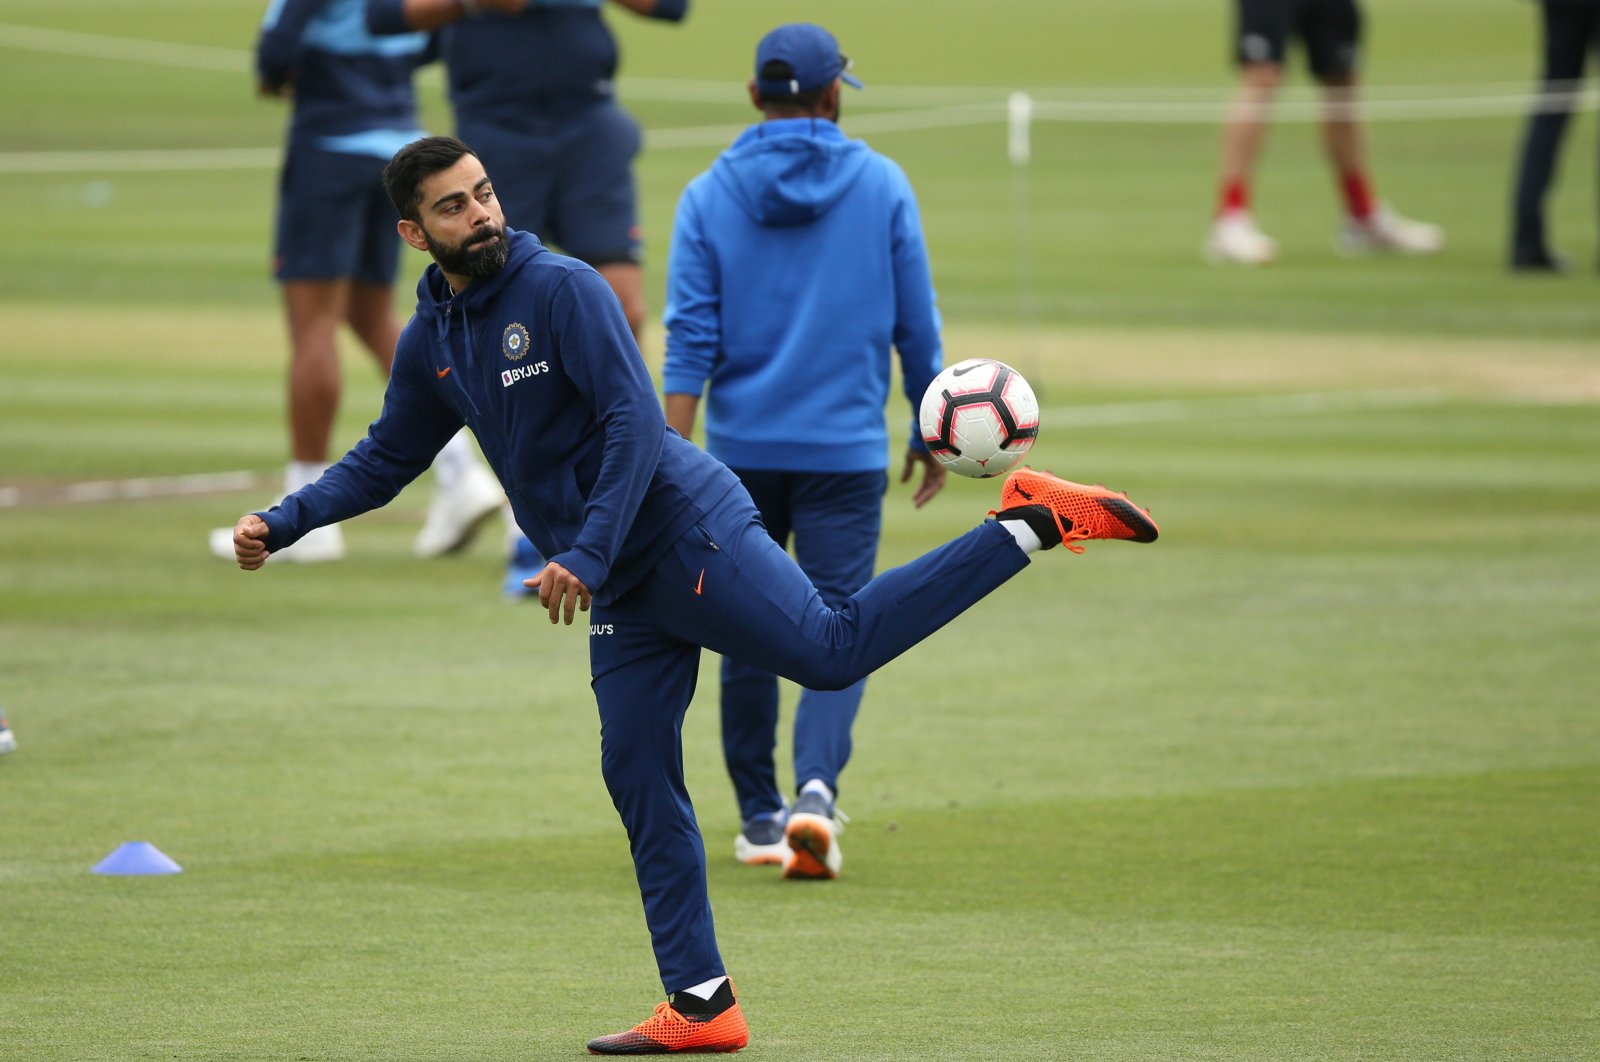 India's Virat Kohli with a soccer ball during the warmup before a cricket match, in Christchurch, New Zealand, March 2, 2020. (REUTERS Photo)